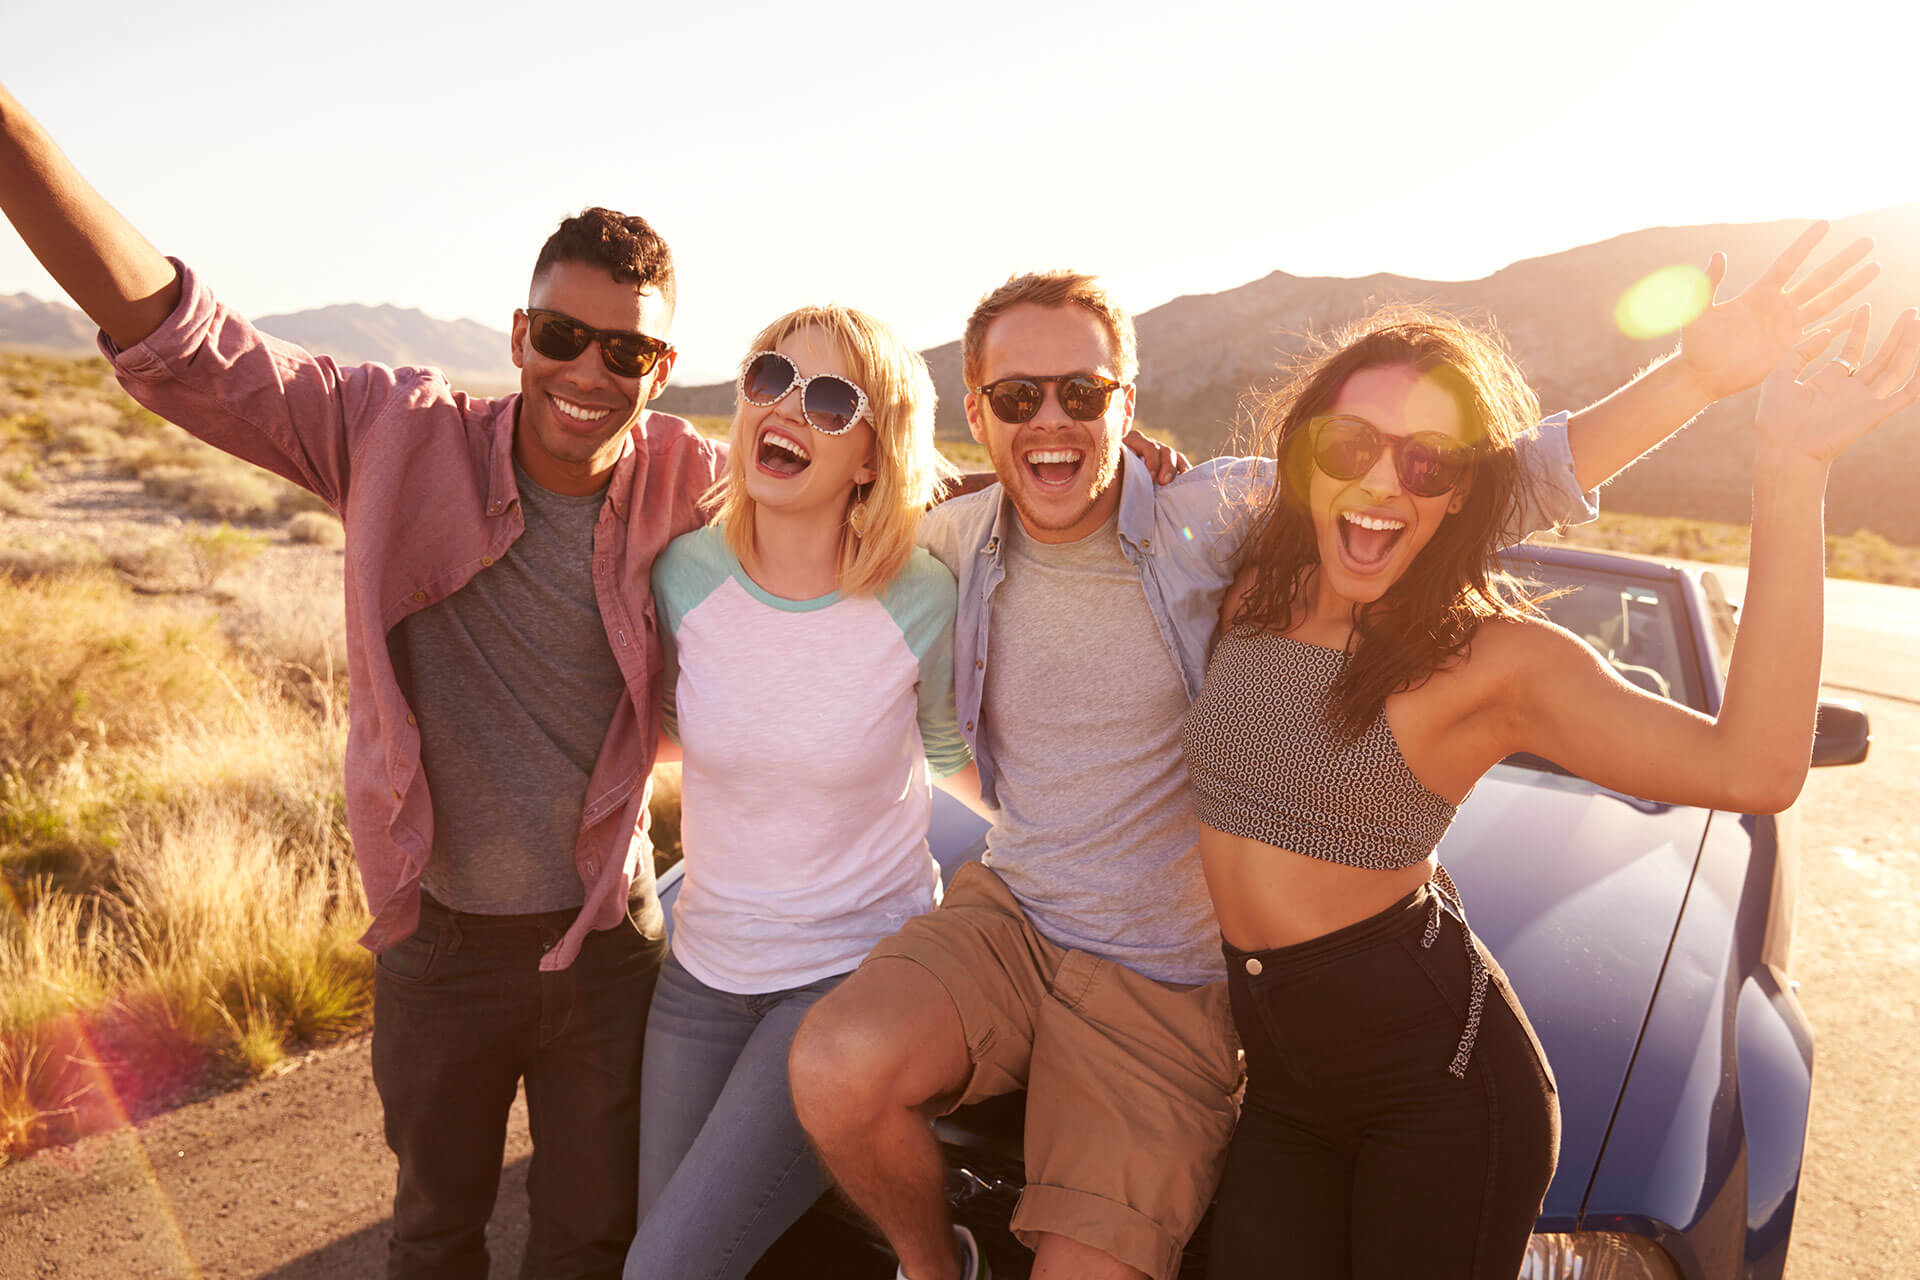 How to become a more sociable person 44